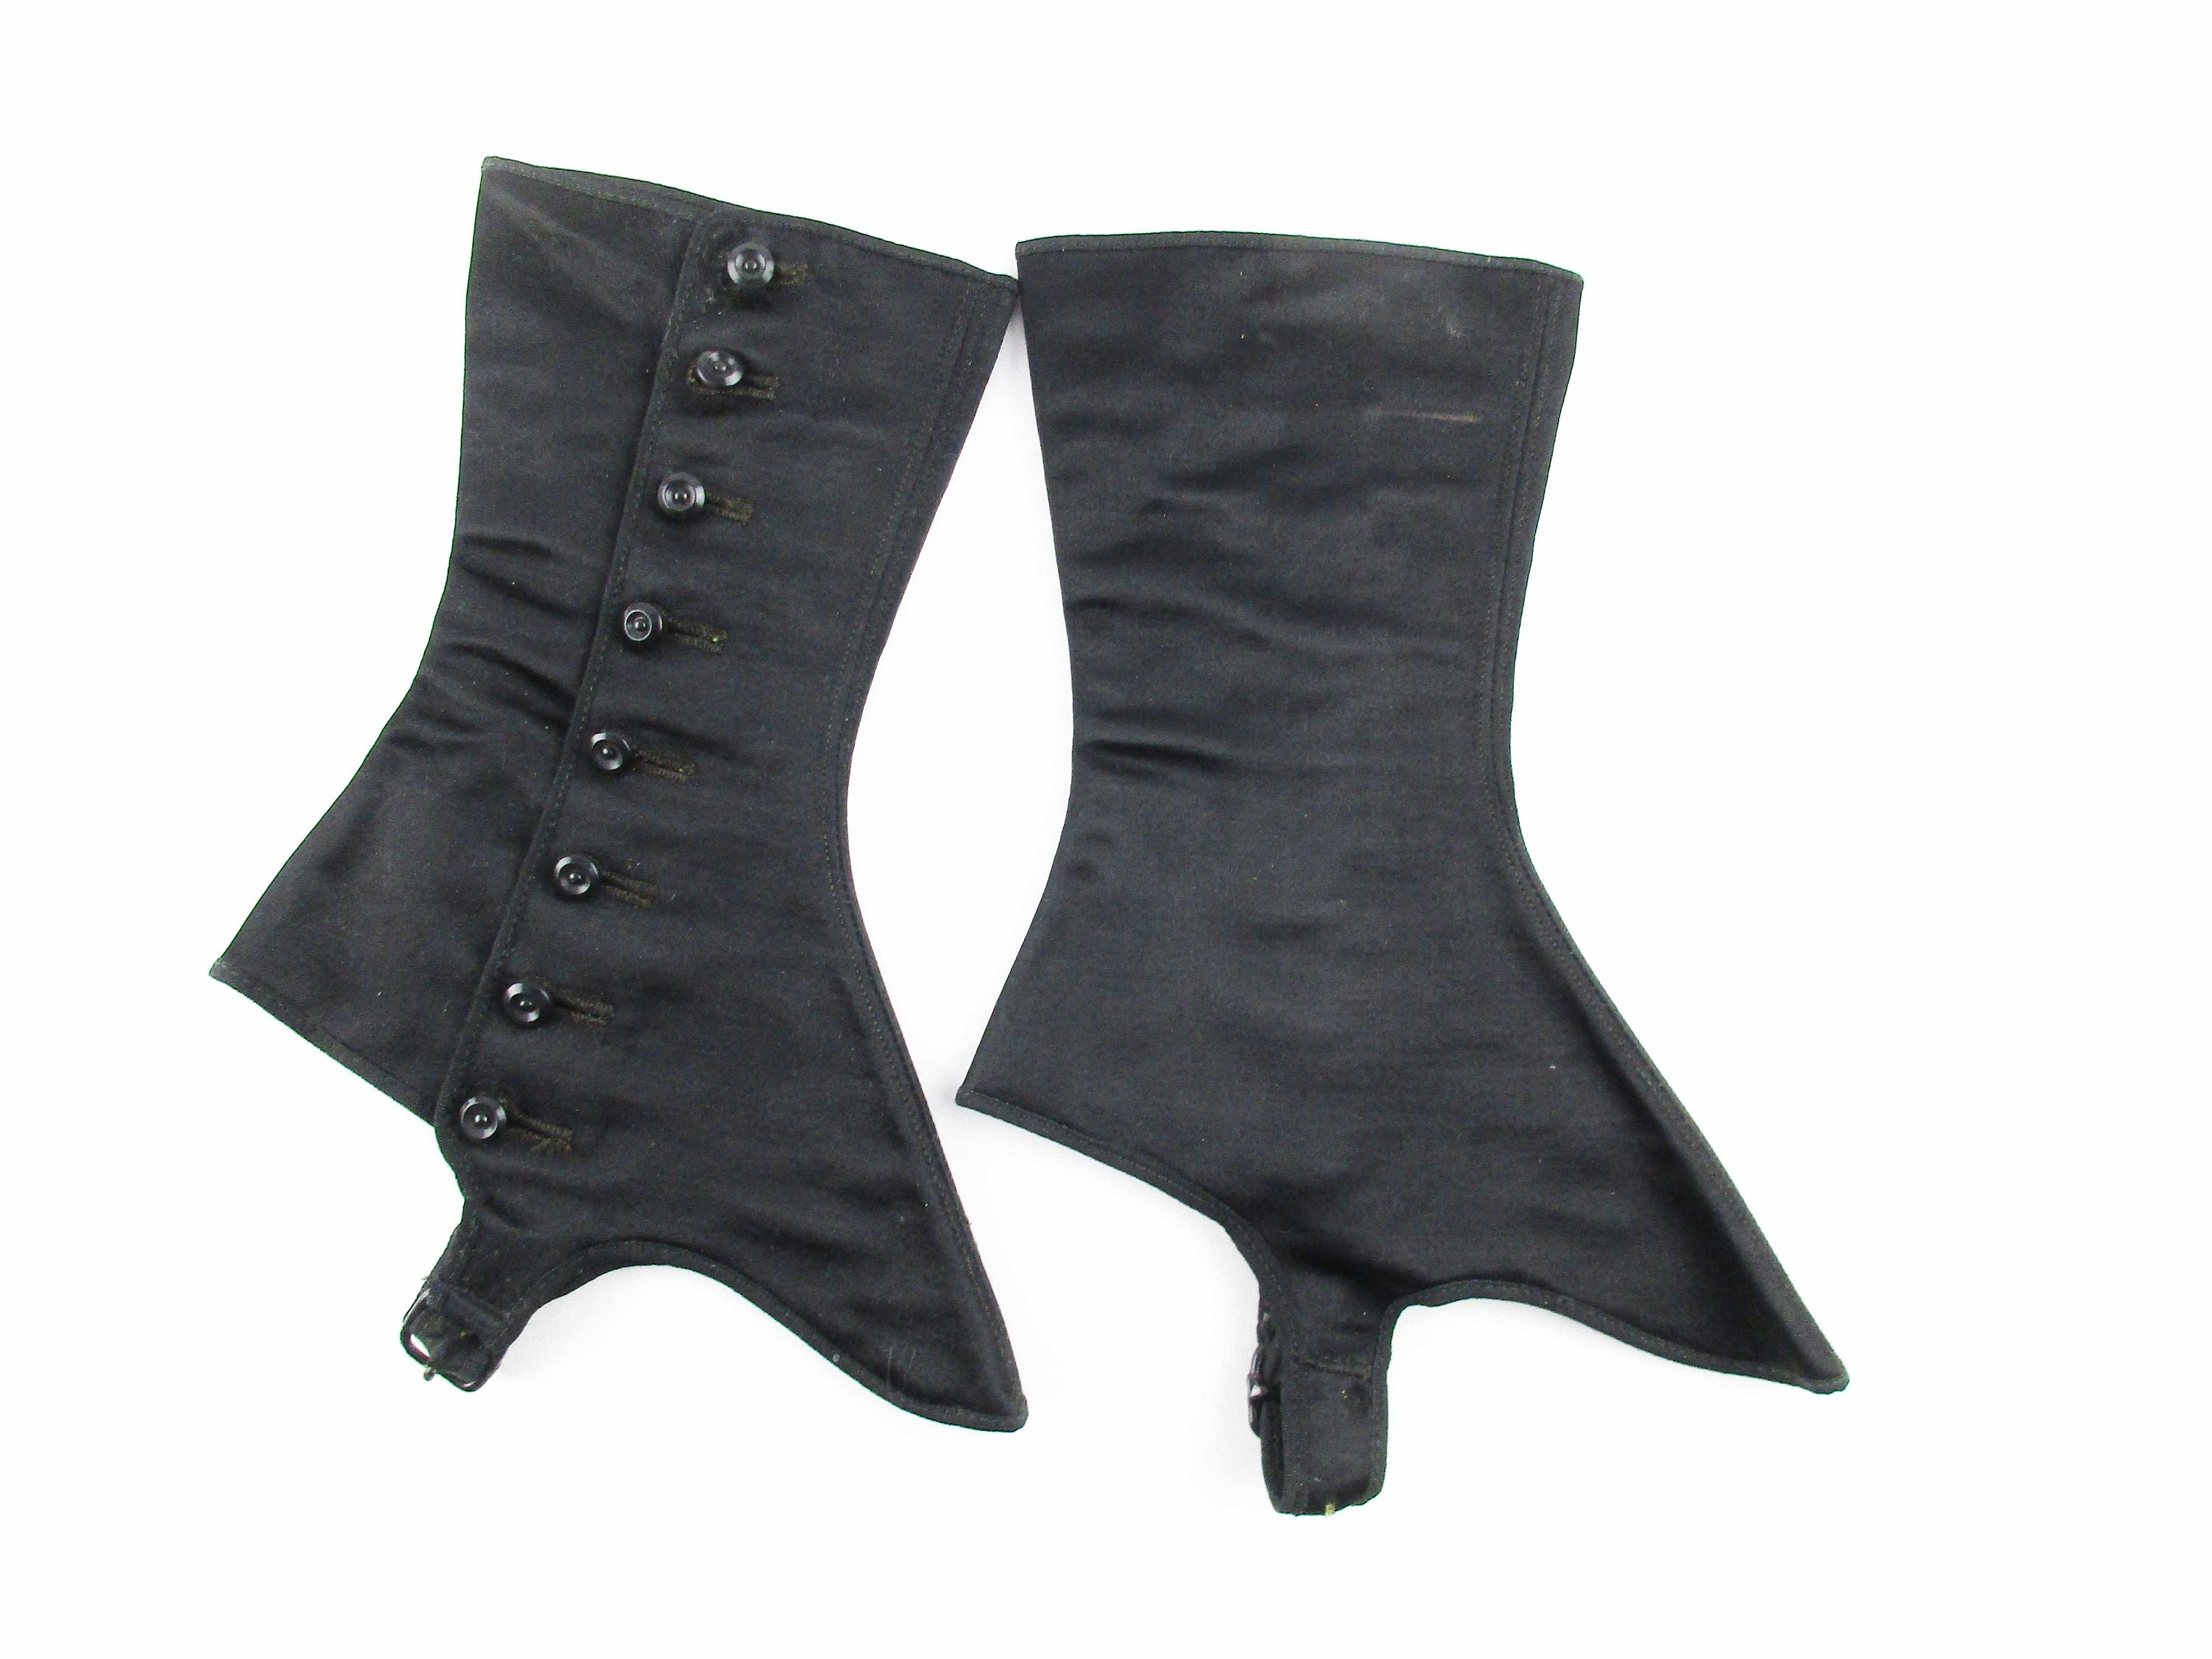 Spats, Gaiters, Puttees – Vintage Shoes Covers Vintage Womens Black Satin SpatsGaitors - The Great Gatsby With Buttons Olive Green Lining Paper Tag Marked Size 2 $36.00 AT vintagedancer.com